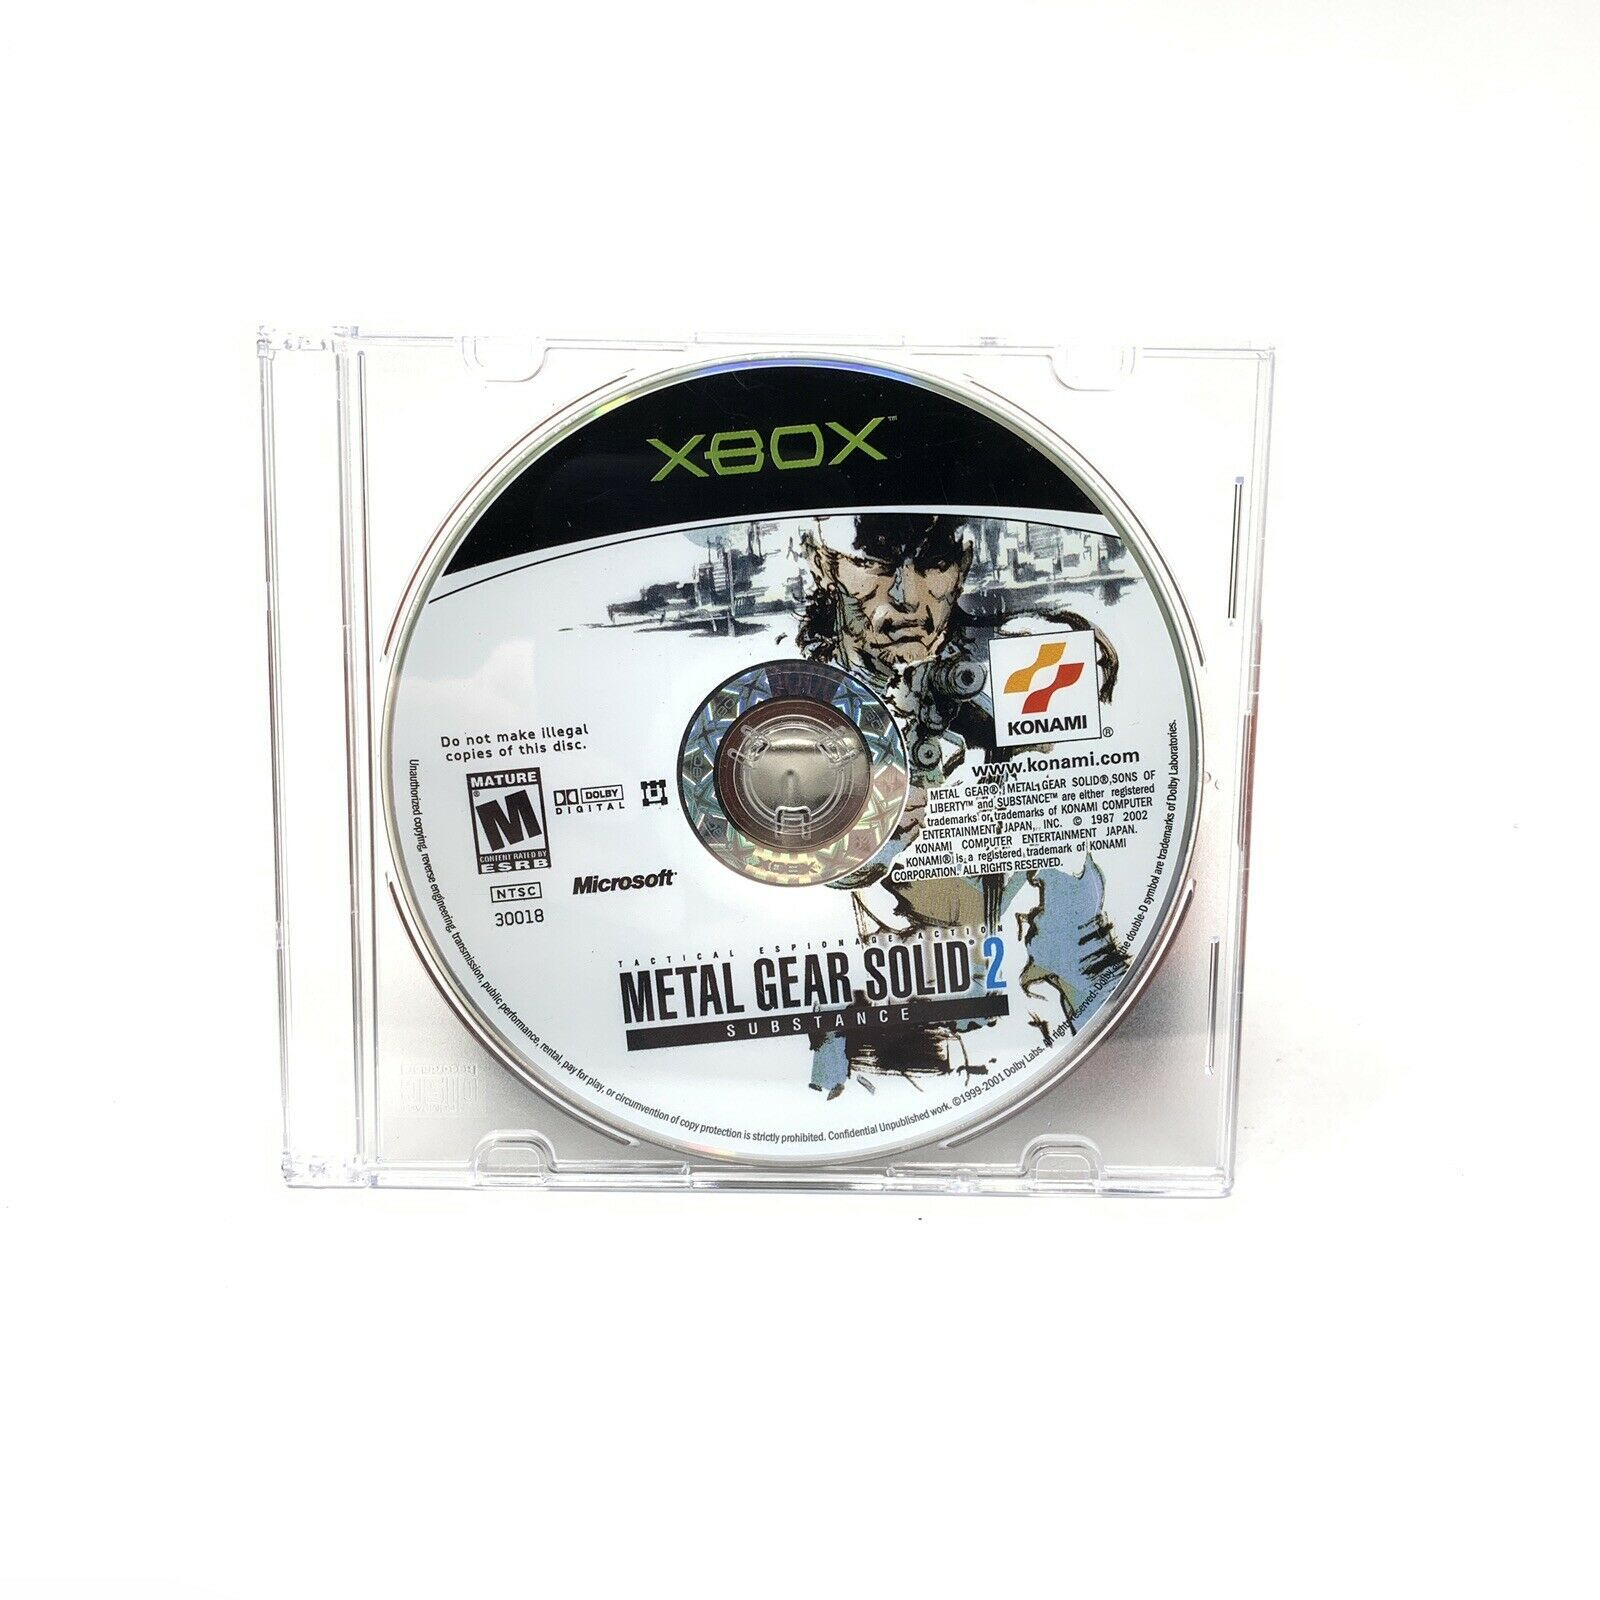 Metal Gear Solid 2 Substance Microsoft Xbox 2002 Disc Only Tested